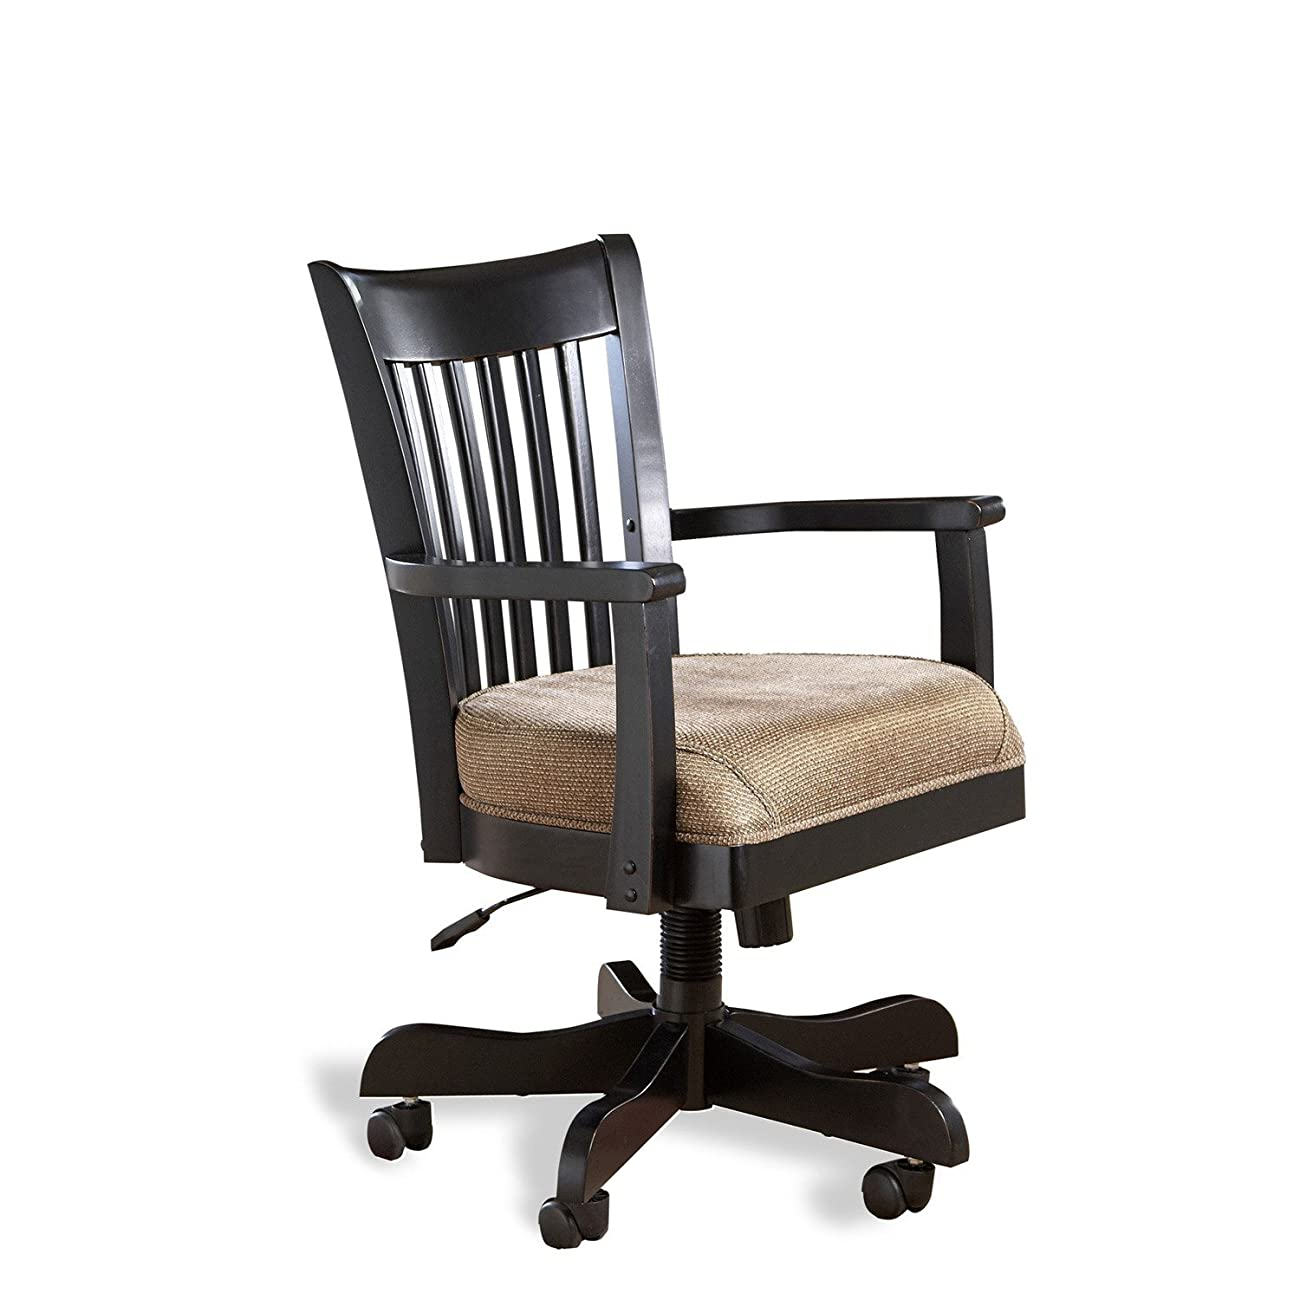 Bridgeport Desk Chair in Antique Black Finish 0